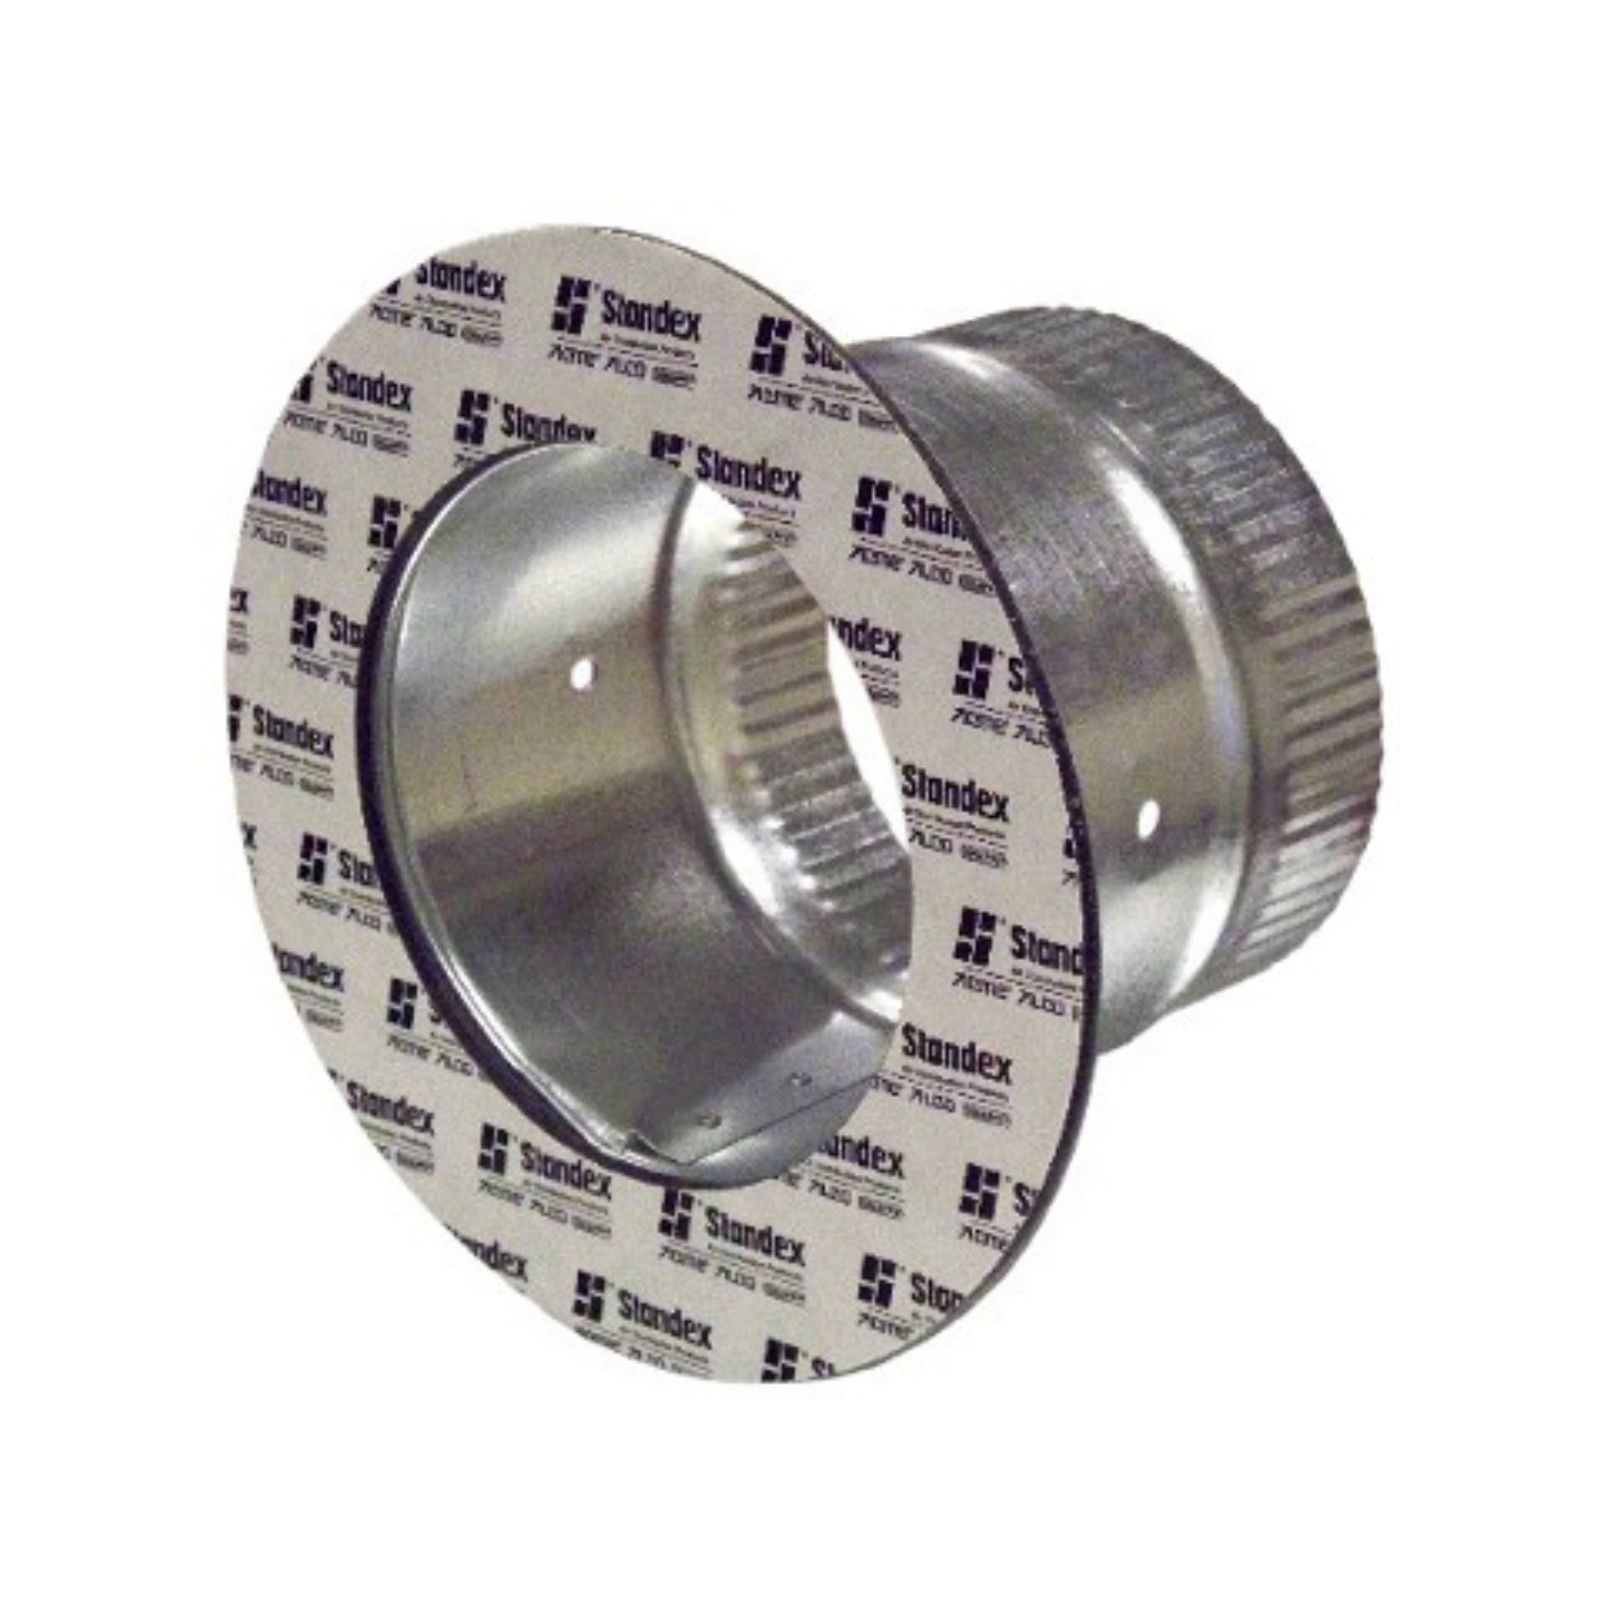 "Snappy 167-9 - #167 - Adhesive Takeoff, 6"" Tube Length, 1 1/2"" Flange, for 9"" Duct"